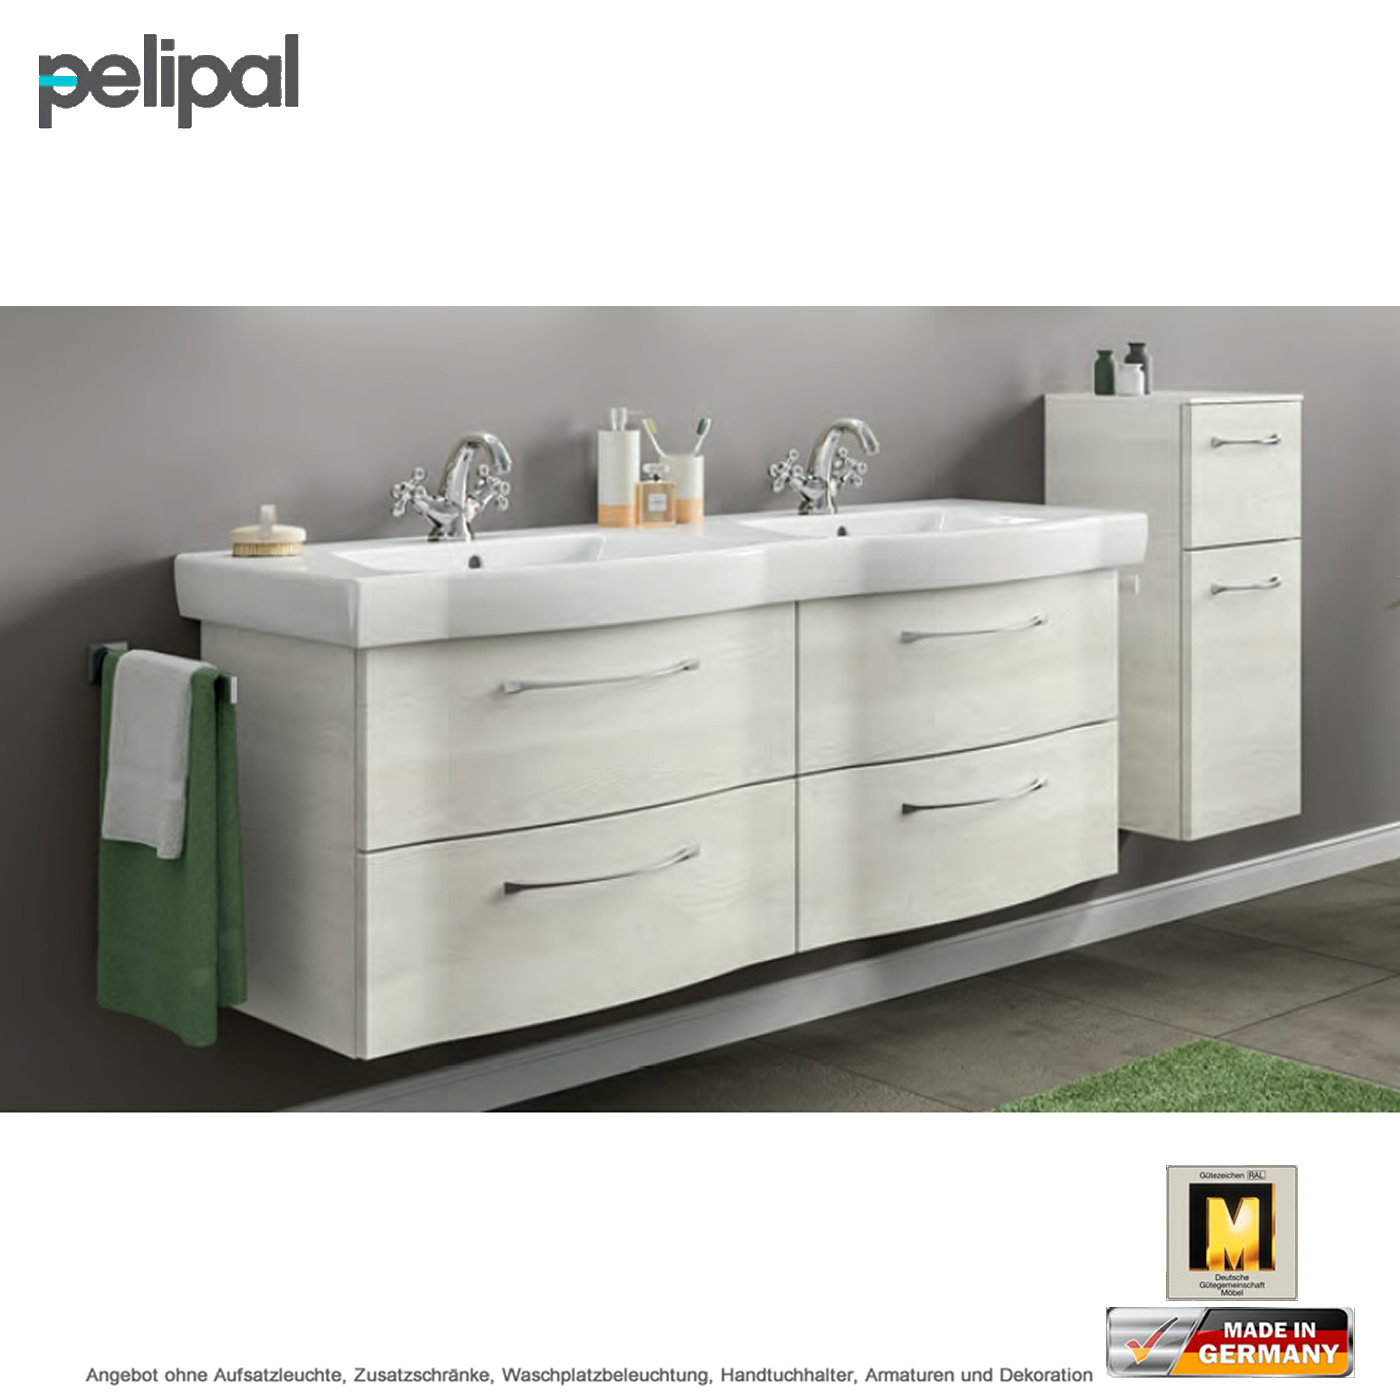 pelipal solitaire 6005 waschtischset 140 cm mit. Black Bedroom Furniture Sets. Home Design Ideas